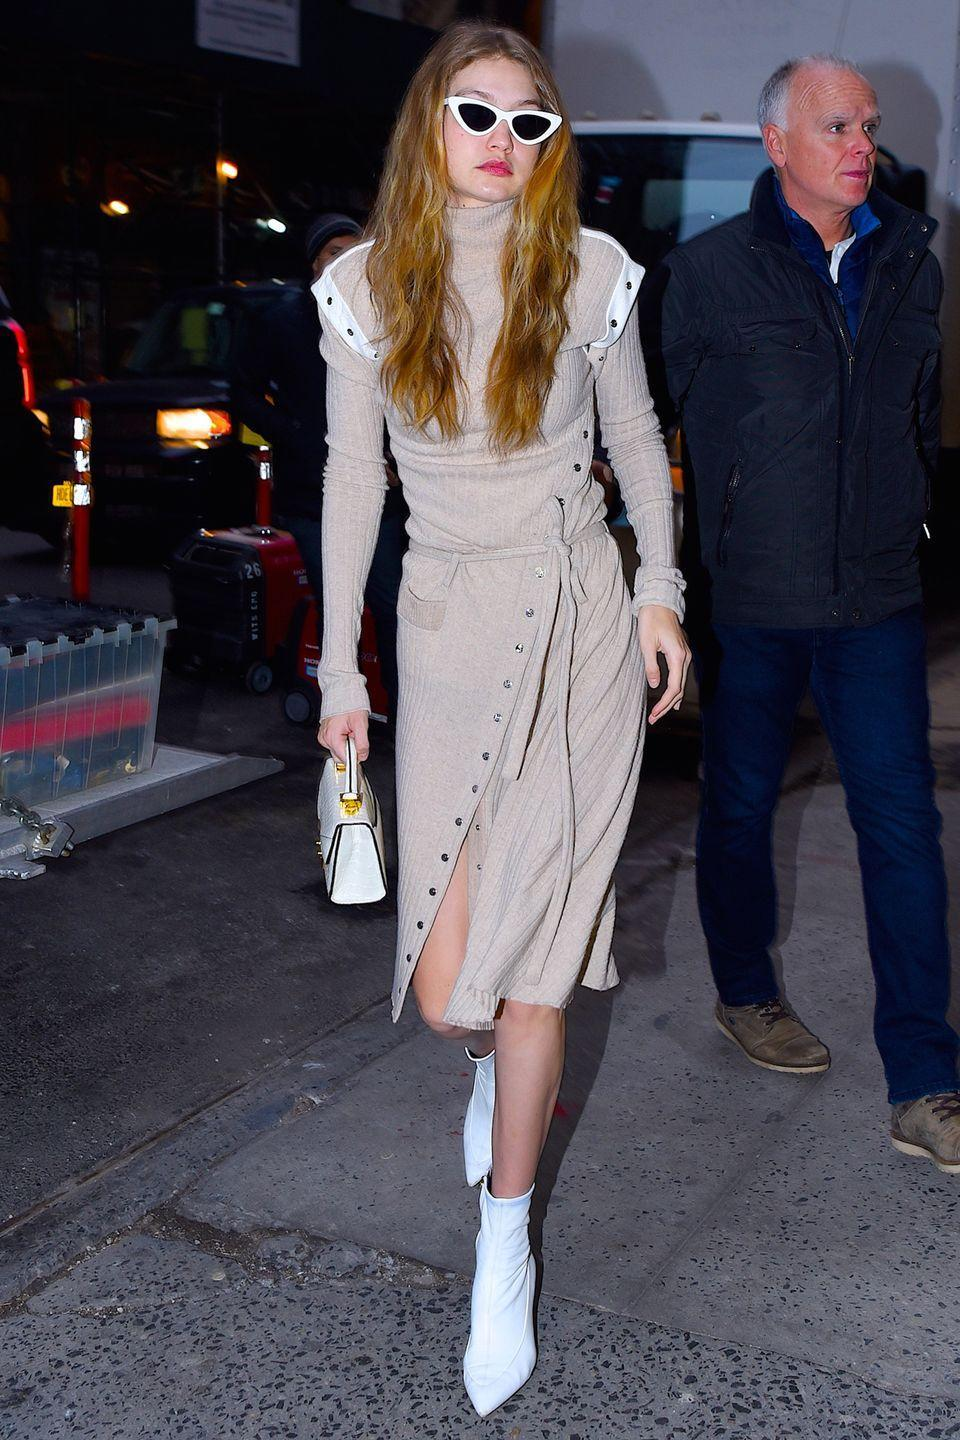 """<p>In an asymmetrical thigh-slit nude sweater dress, white ankle boots, and <a href=""""https://www.openingceremony.com/eyewear/adam-selman-x-le-specs/the-last-lolita-sunglasses_1477595828071.html?gclid=CjwKCAiA5OrTBRBlEiwAXXhT6C4KBN_rUpqry69qSViiGq2OLPQPxz4f_3VQeS0oqYewCqpTr1PUUBoC2LIQAvD_BwE&gclsrc=aw.ds"""" rel=""""nofollow noopener"""" target=""""_blank"""" data-ylk=""""slk:Adam Selman x Le Specs sunglasses"""" class=""""link rapid-noclick-resp"""">Adam Selman x Le Specs sunglasses</a> while out in Manhattan.</p>"""